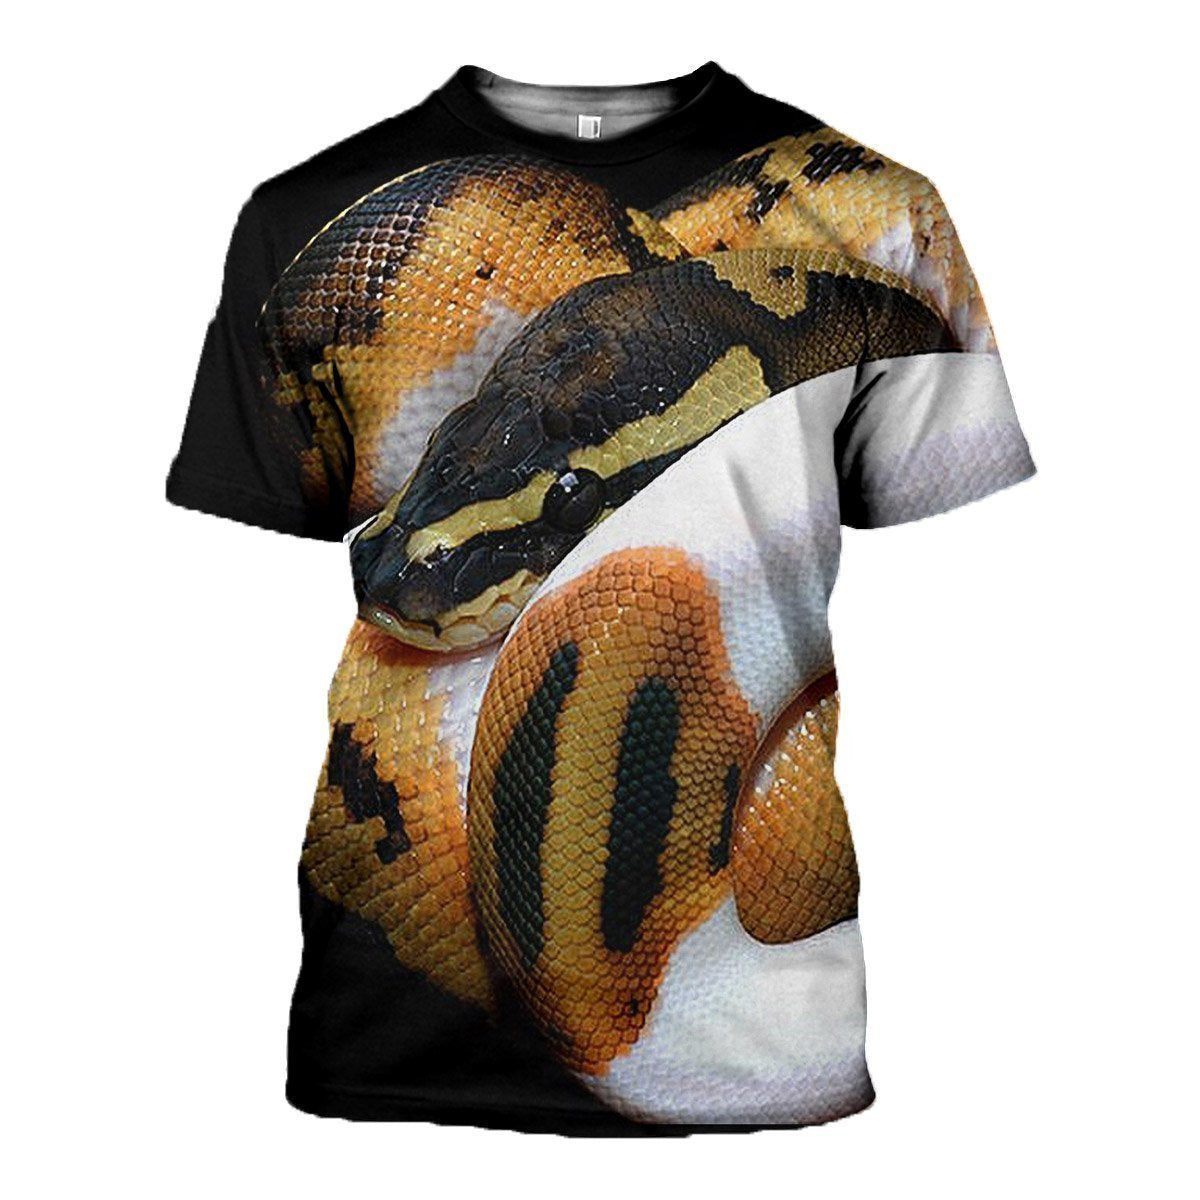 3D All Over Printed Snake Shirts and Shorts - Amaze Style™